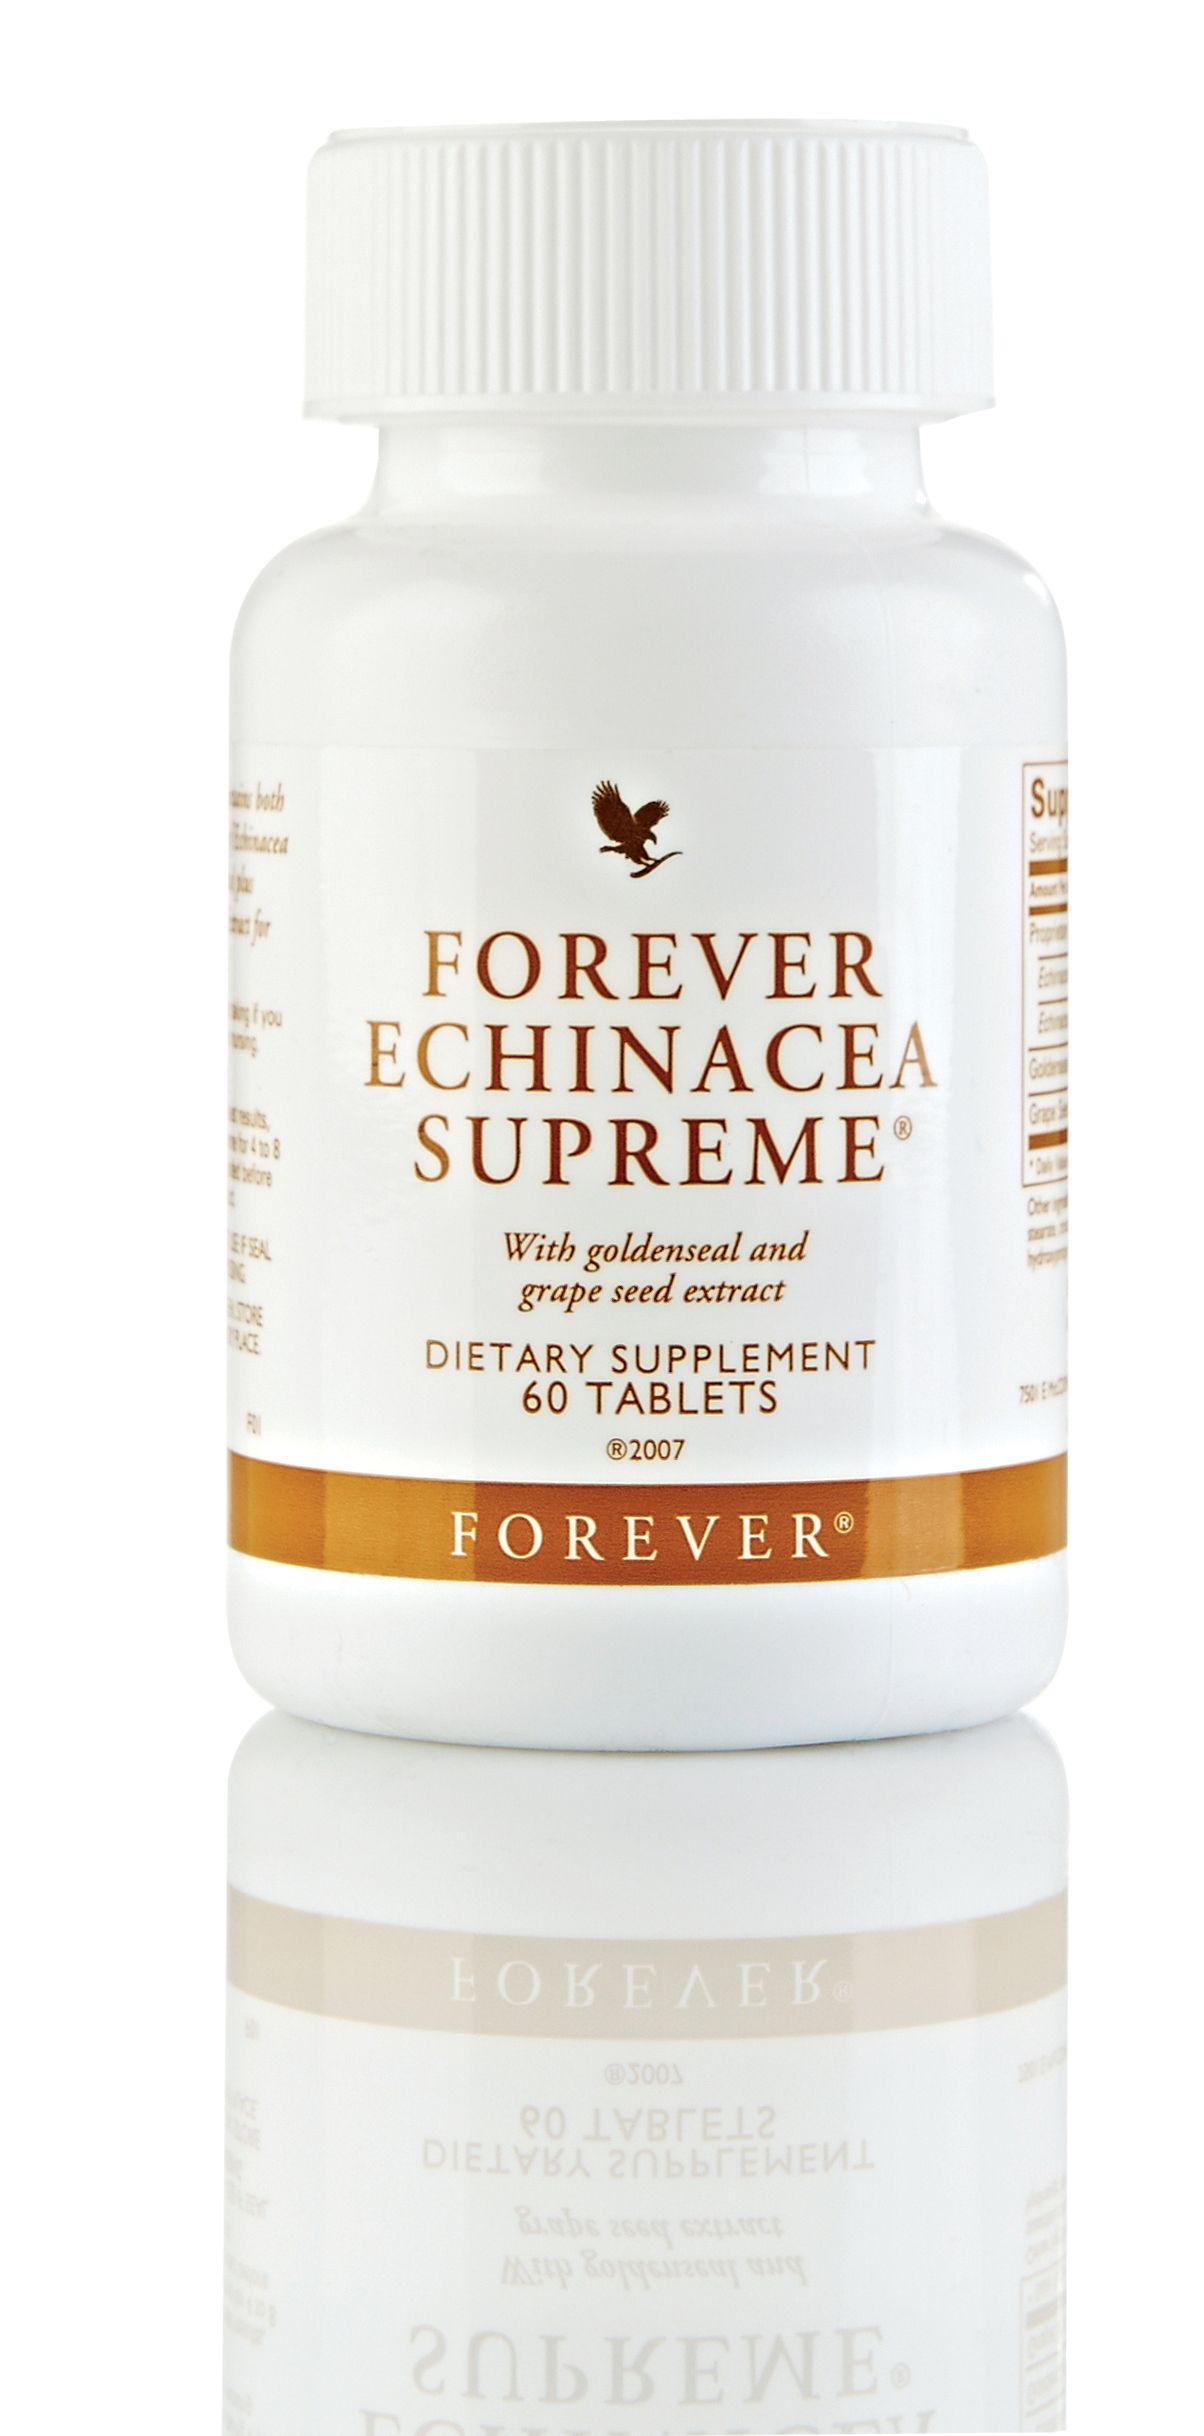 Echinacea with goldseal and grape great health benefits. My Come Try Aloe shop is here check it out www.foreverliving.com/retail/entry/Shop.do?store=GBR&language=en&distribID=440100068145